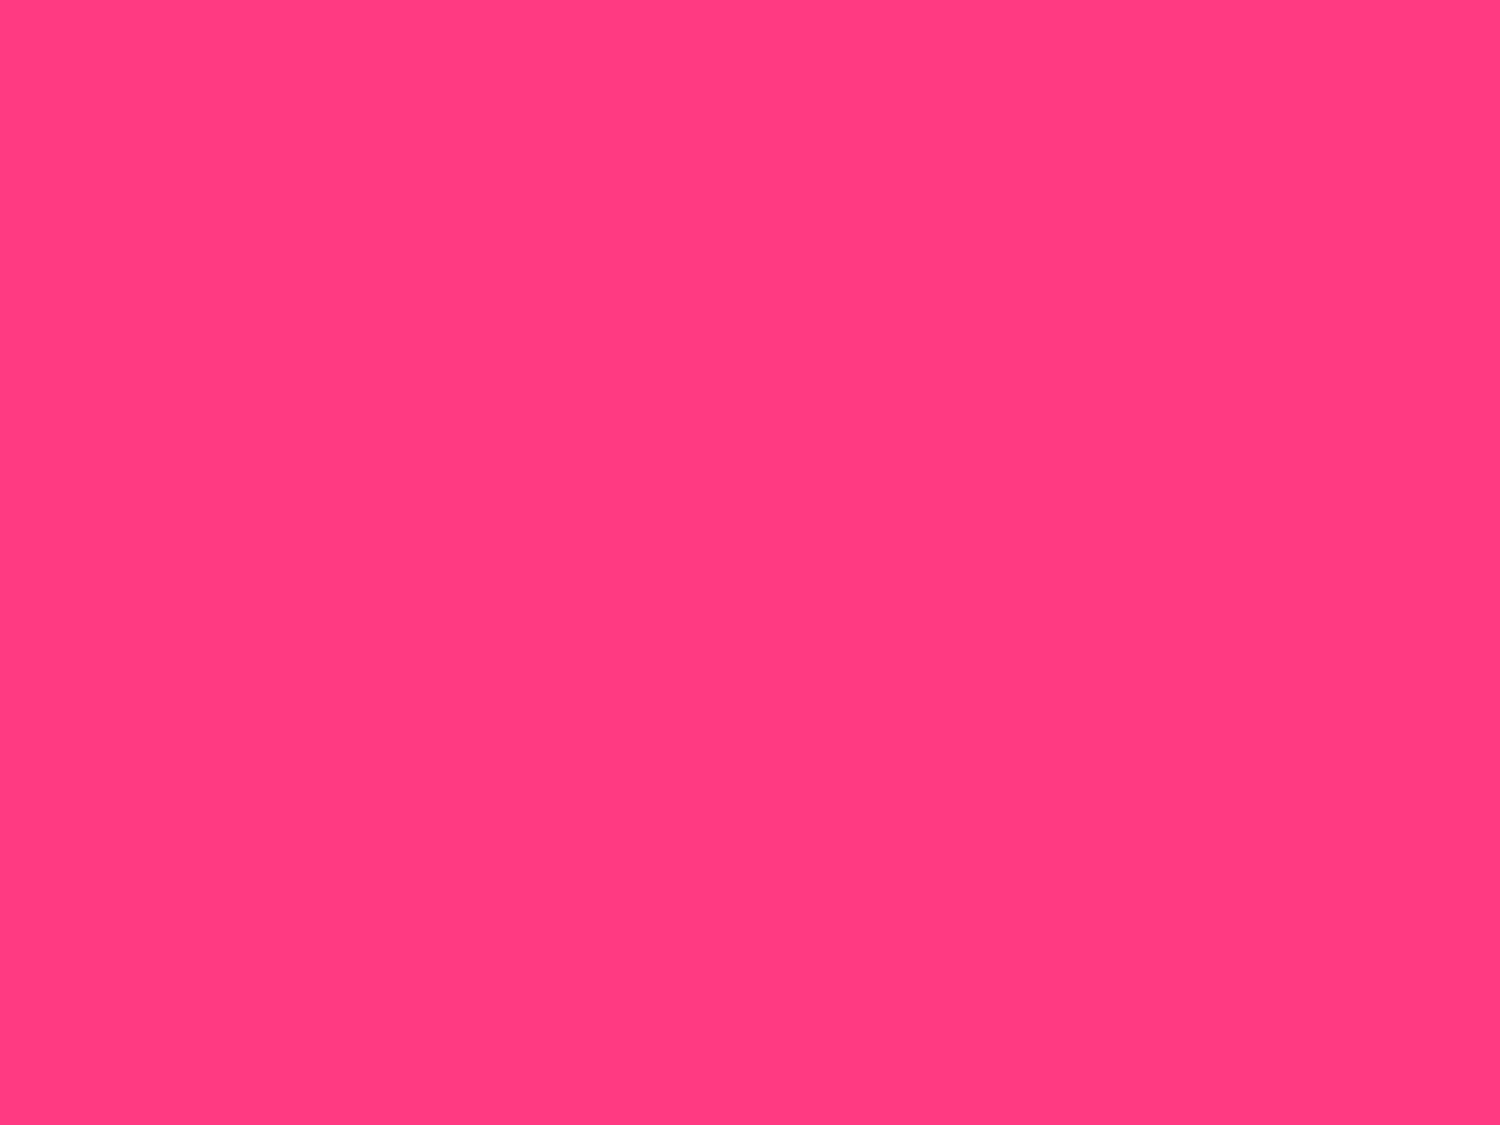 Pin Solid-pink-wallpaper on Pinterest